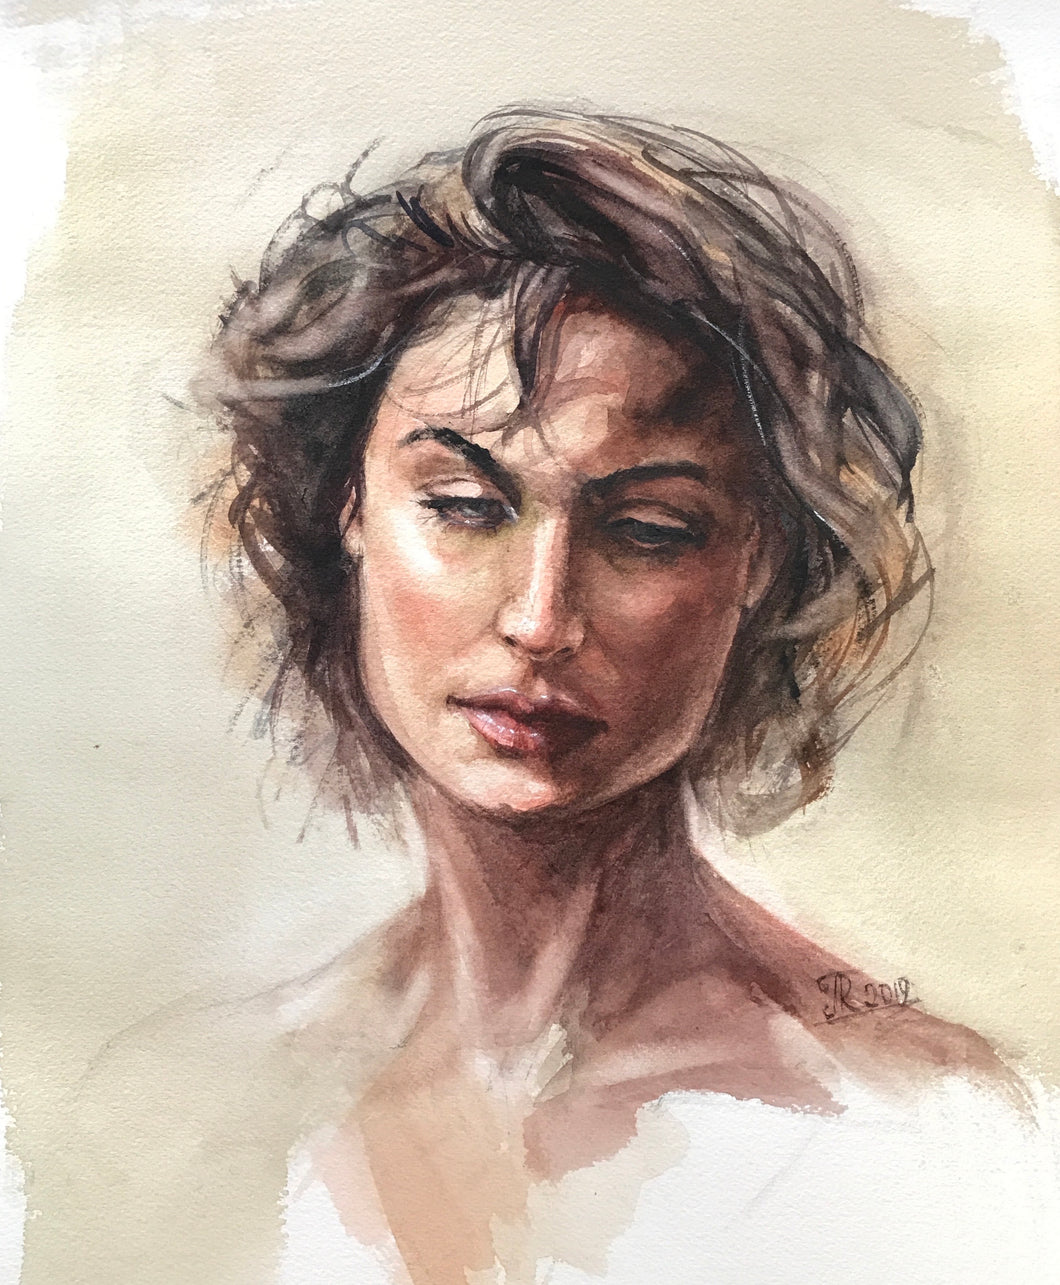 """Portrait Study 2"" By Galina Richardson, Watercolor on Paper"